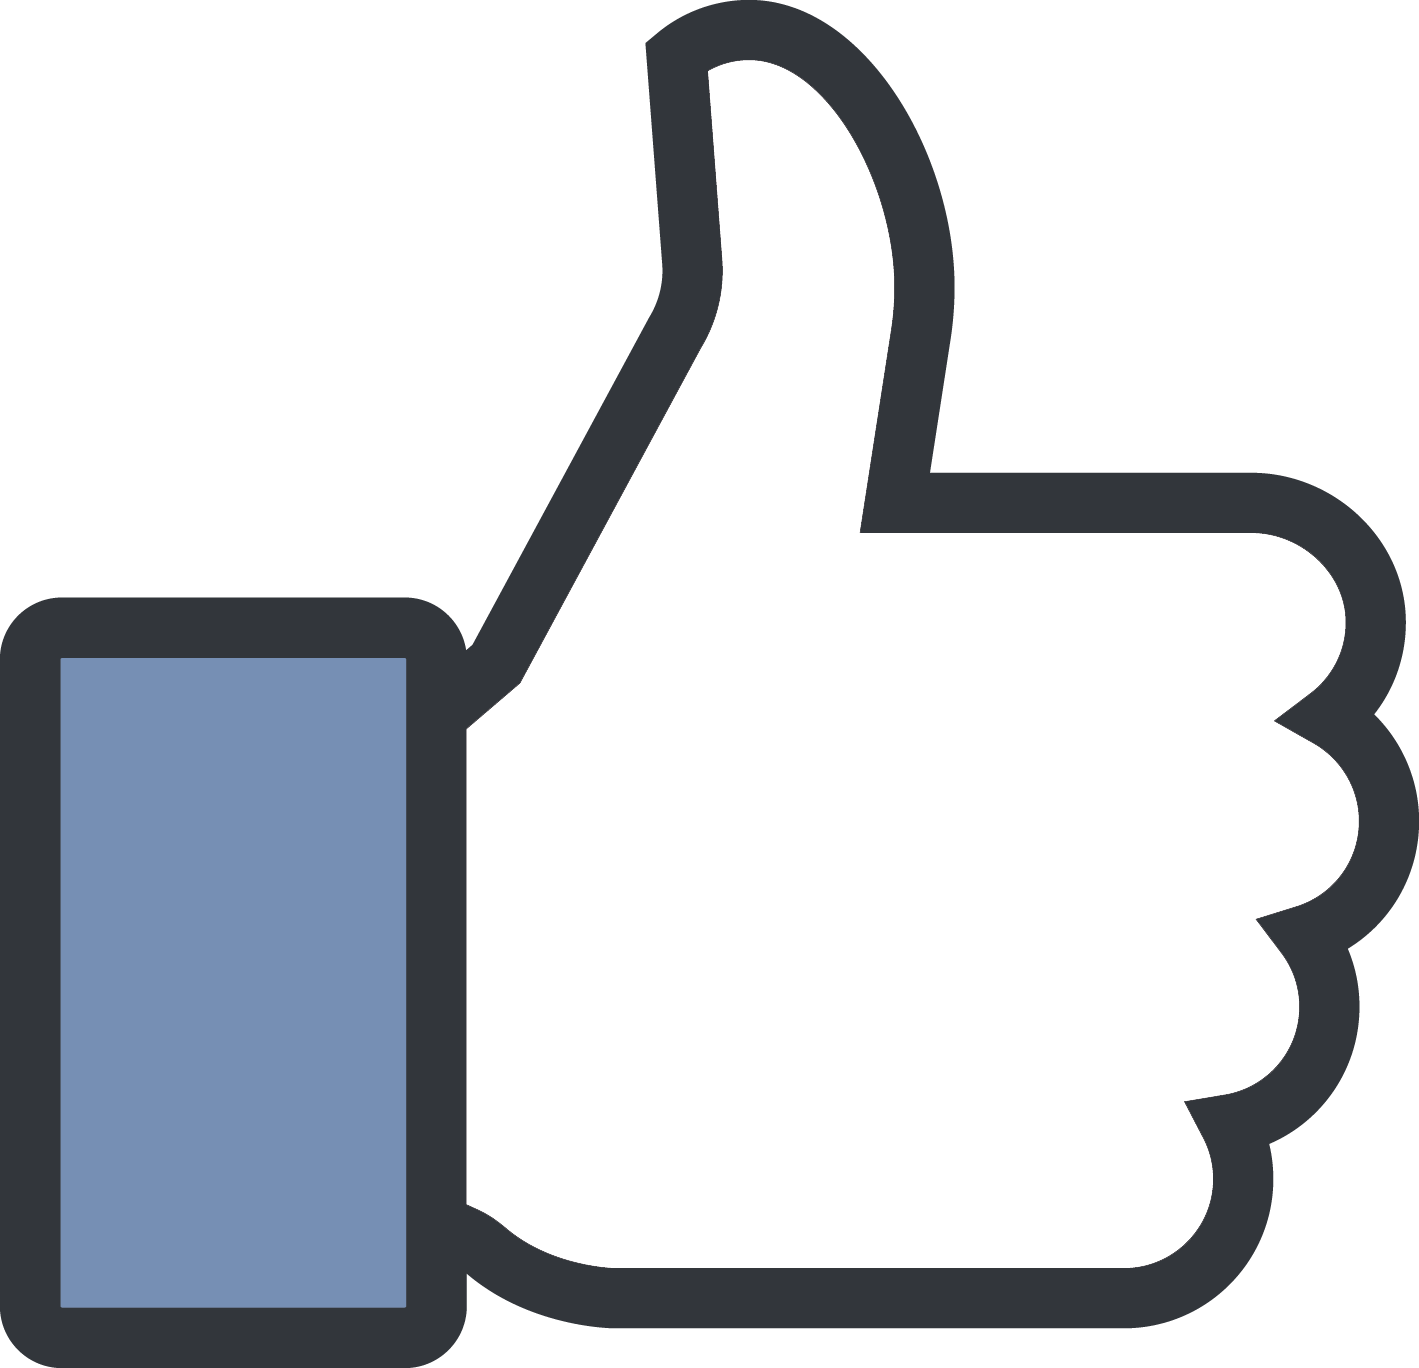 City Thumb Media Signal Facebook Social Button PNG Image